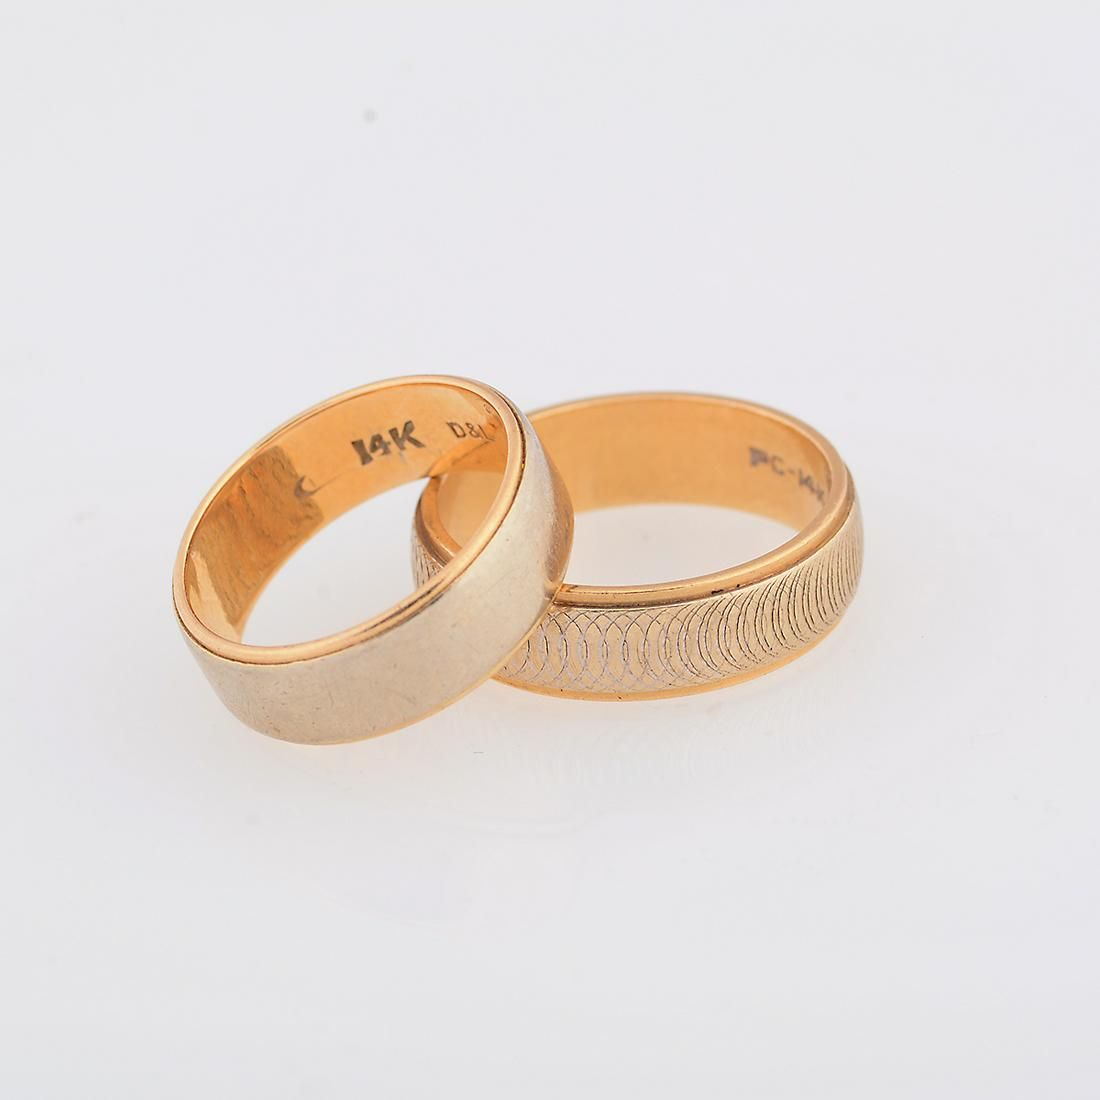 Collection of Two 14k Gold Bands.